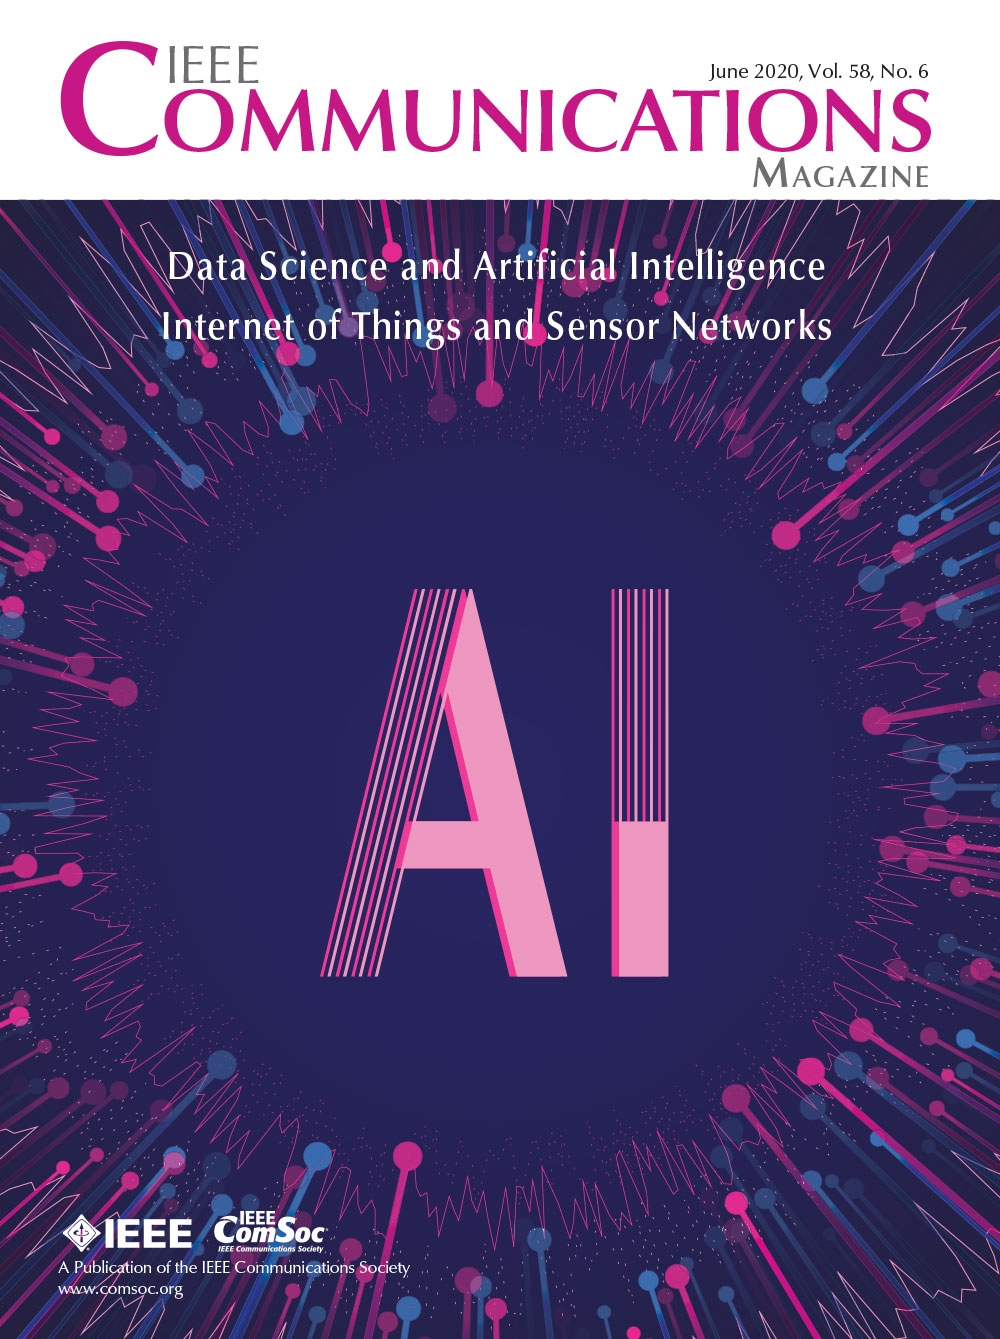 """IEEE Communications Magazine"" written in pink text, with the cover image of the words ""AI"" written in light purple on a dark purple background."